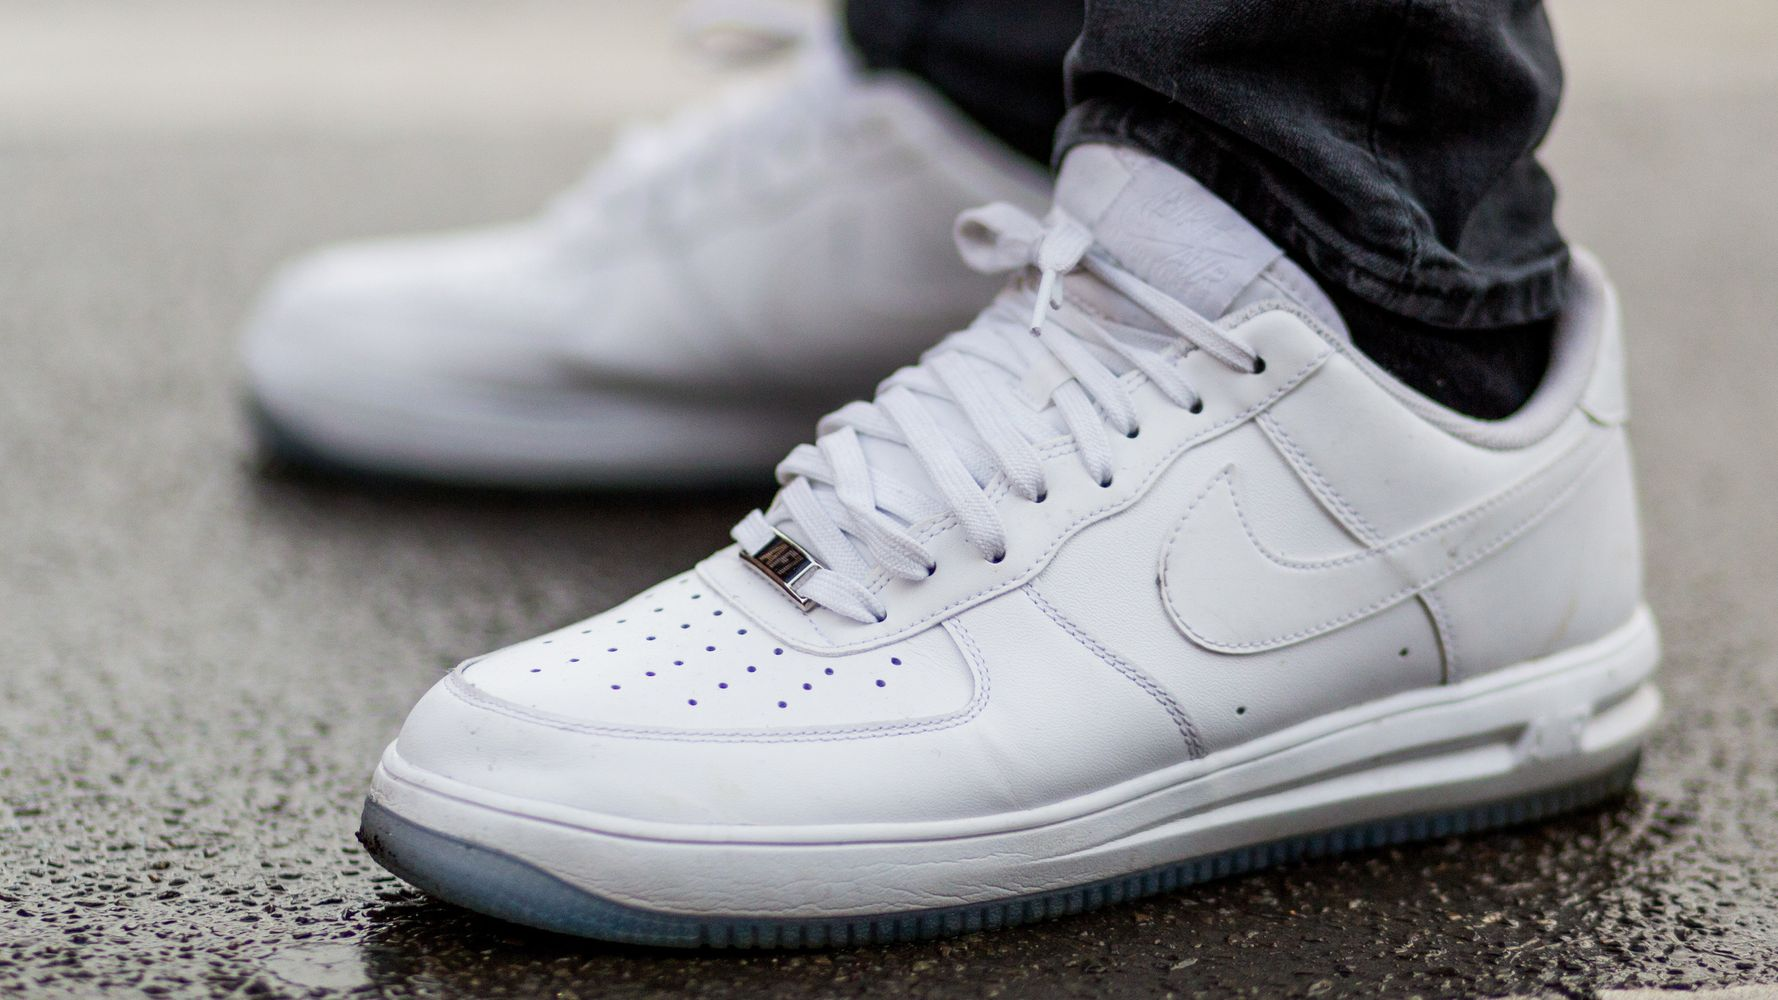 Another All White Sneaker Is In The Works, This Time By Way